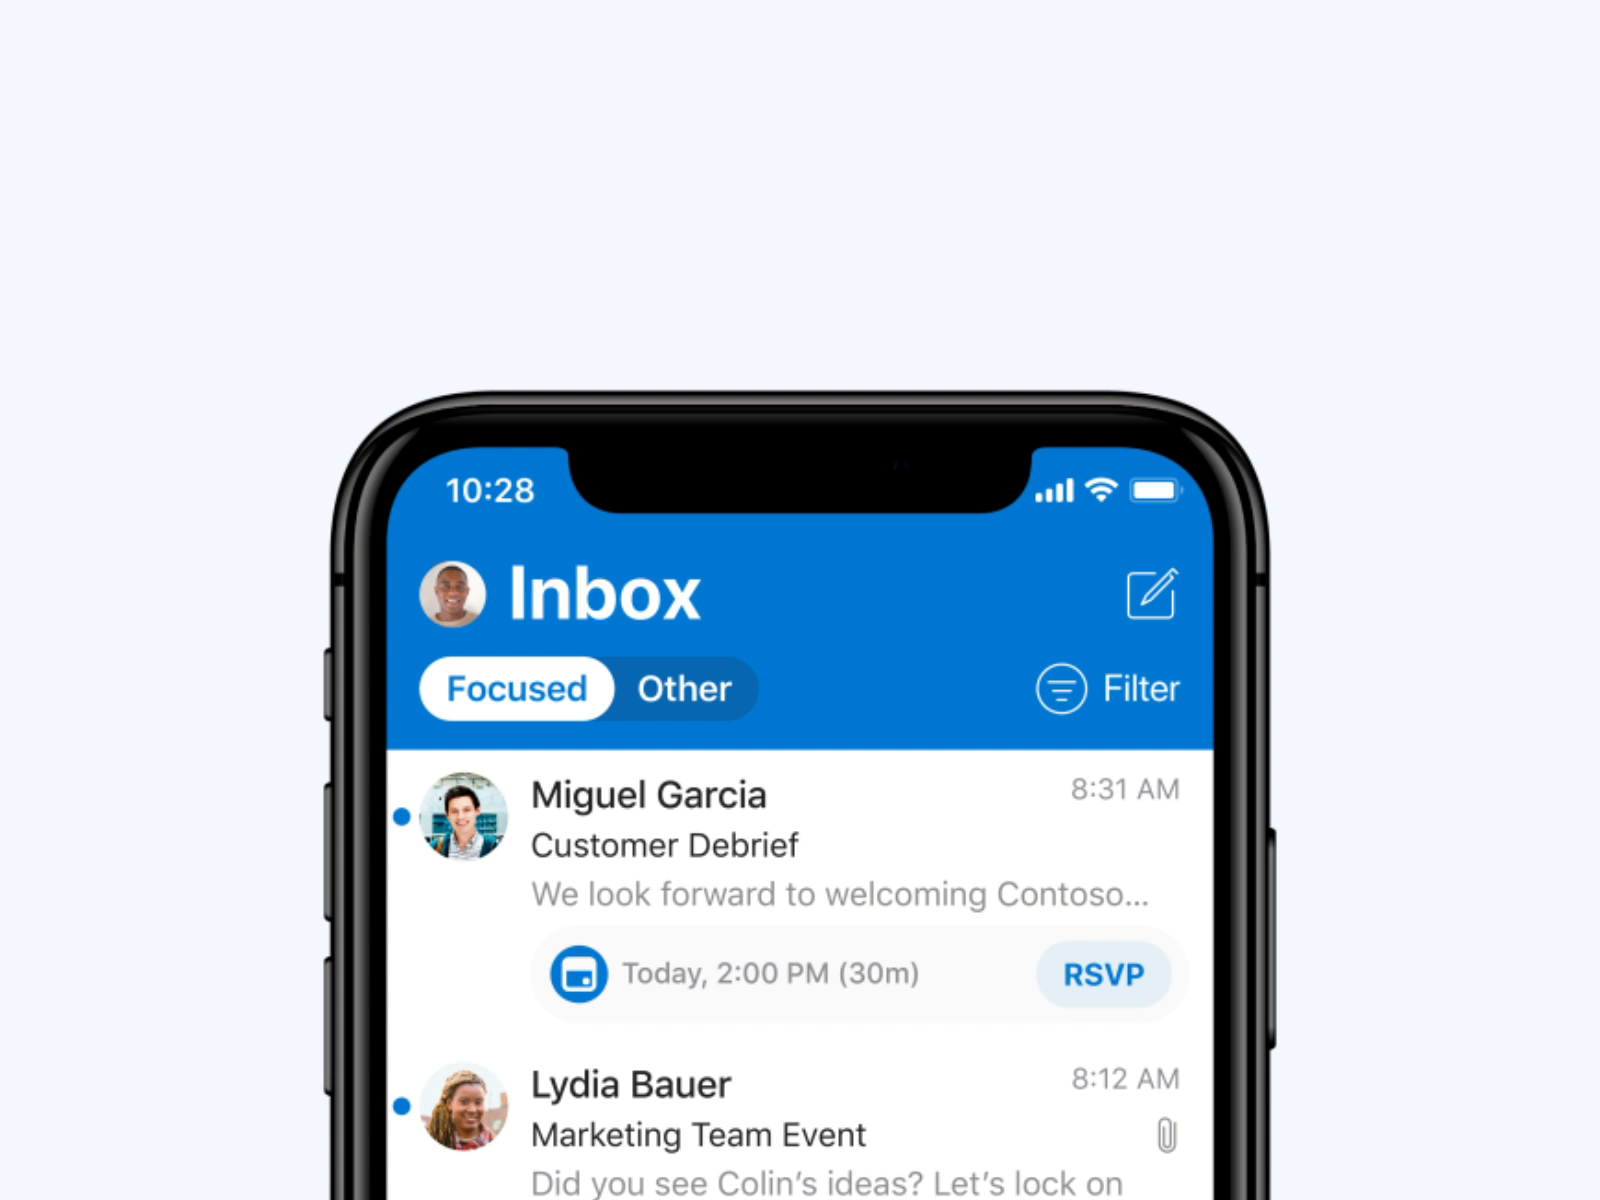 0f80d9c0a48c3d419f7888f78588ac33 - How To Get My Microsoft Outlook Email On My Iphone